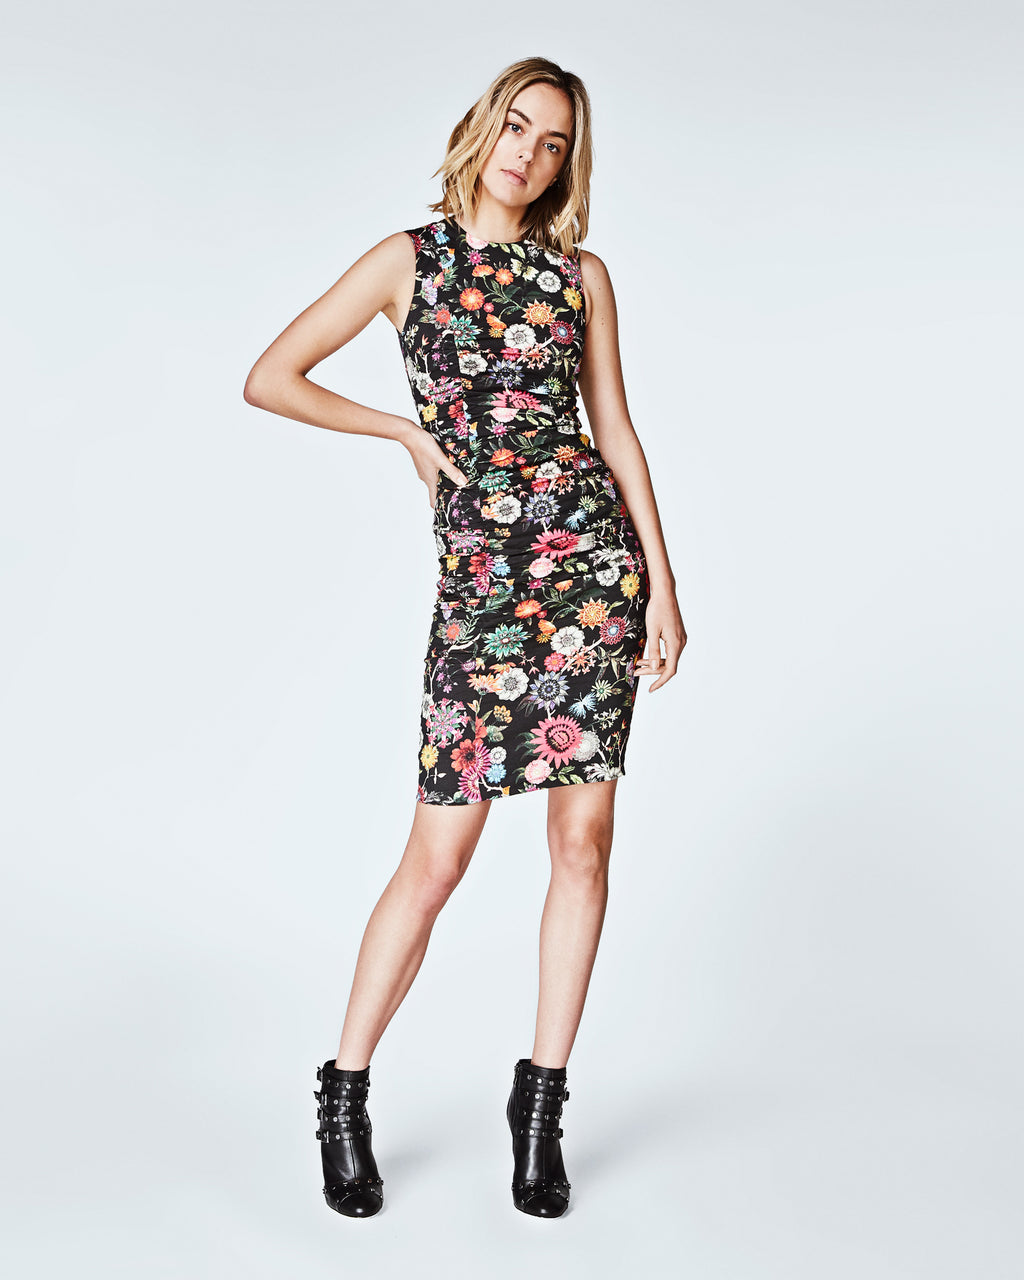 CC10178 - FLORAL NECTARY TUCK DRESS - dresses - short - Vibrant florals splashed on a black cotton metal canvas bring a fun vibe to this sleeveless sheath dress. Skillfull tucking create a form flattering figure. Fully lined.